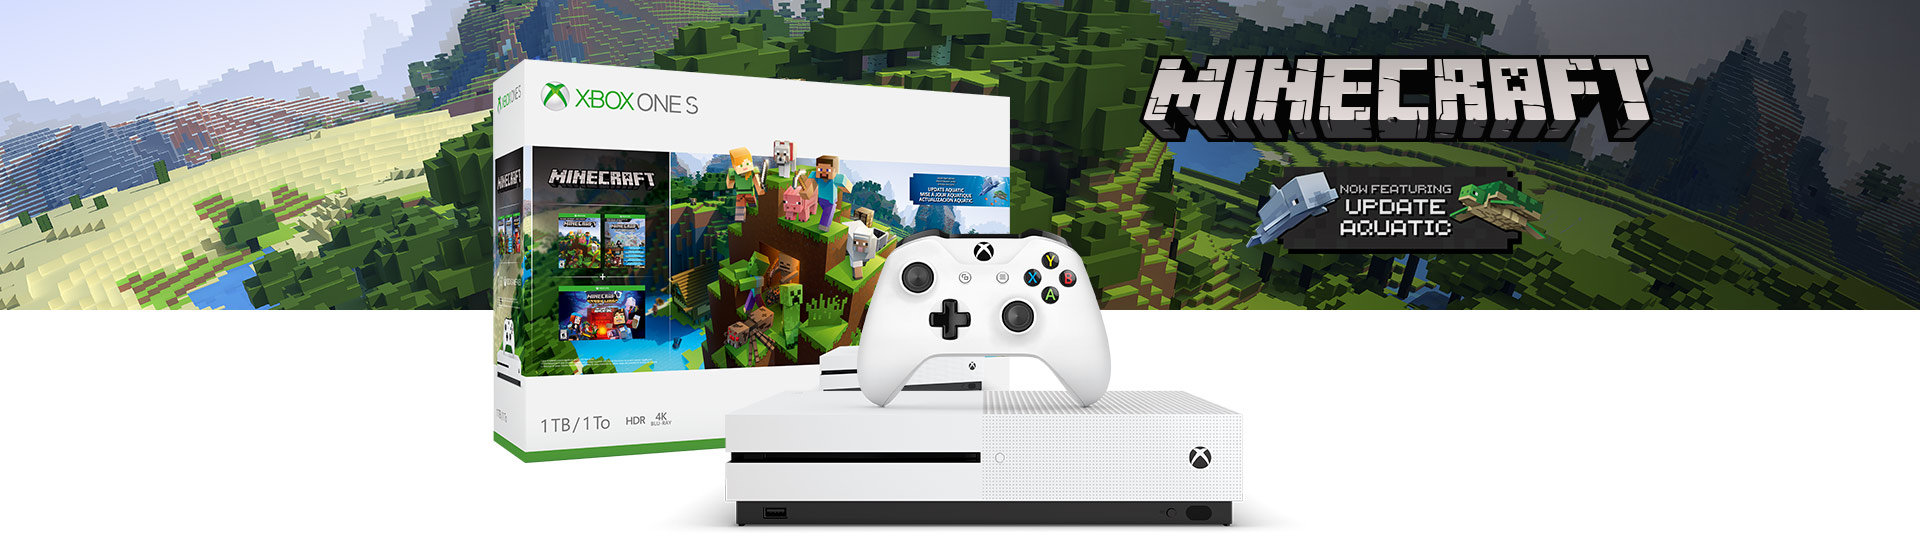 Xbox One S Aquatic Bundle 1TB